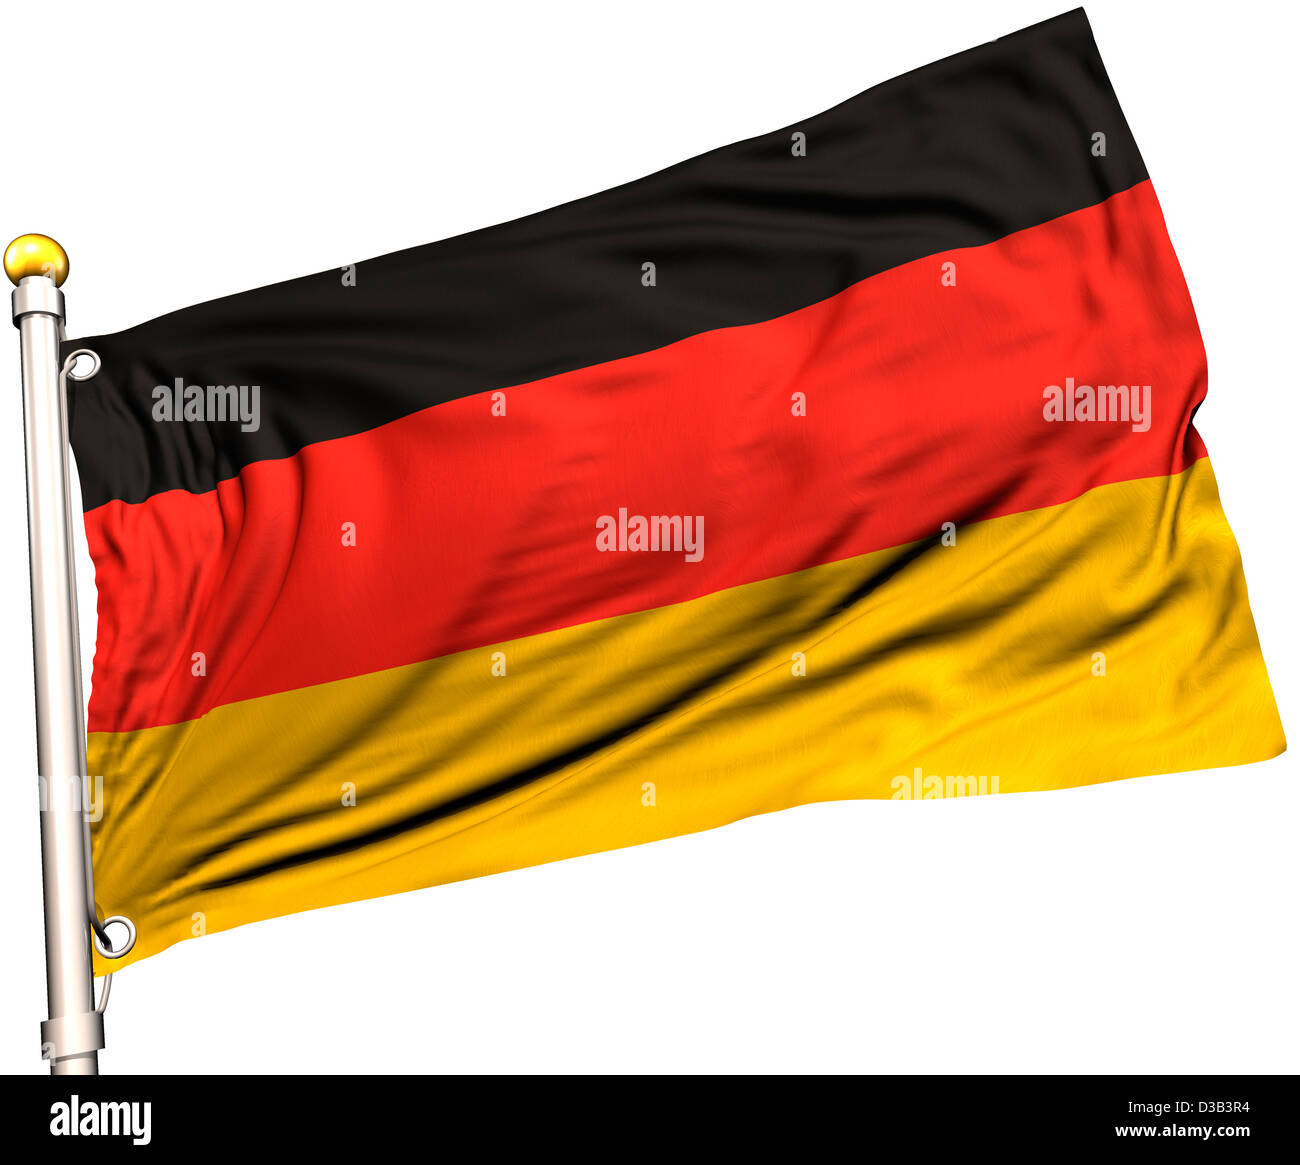 Germany flag on a flag pole. Clipping path included. Silk texture visible on the flag at 100%. - Stock Image